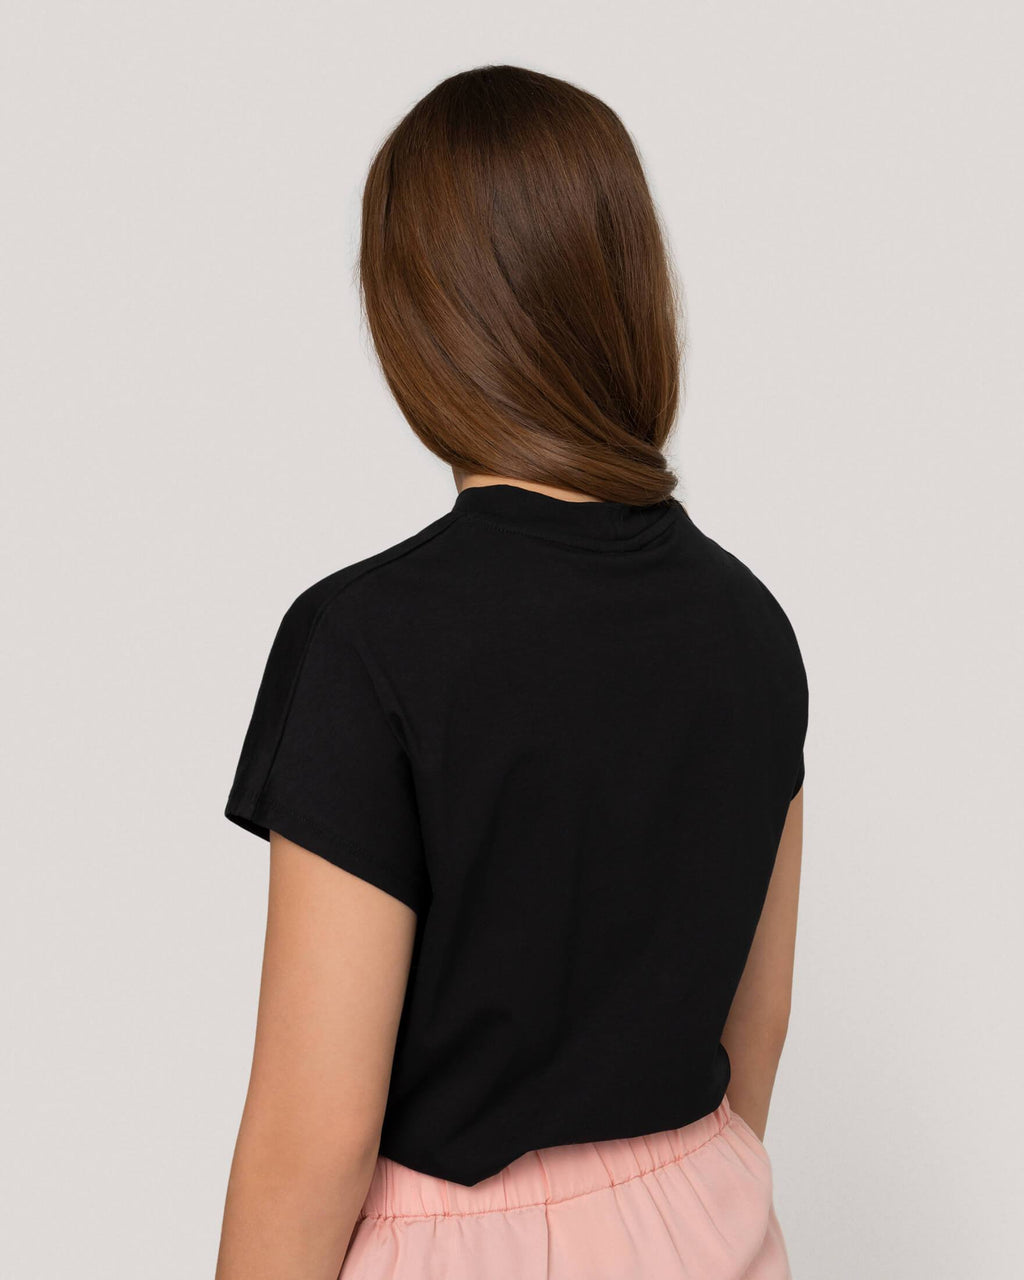 variant_1 | EN Shirt Basic Black Women won hundred | DE T-Shirt Basic Schwarz Damen won hundred